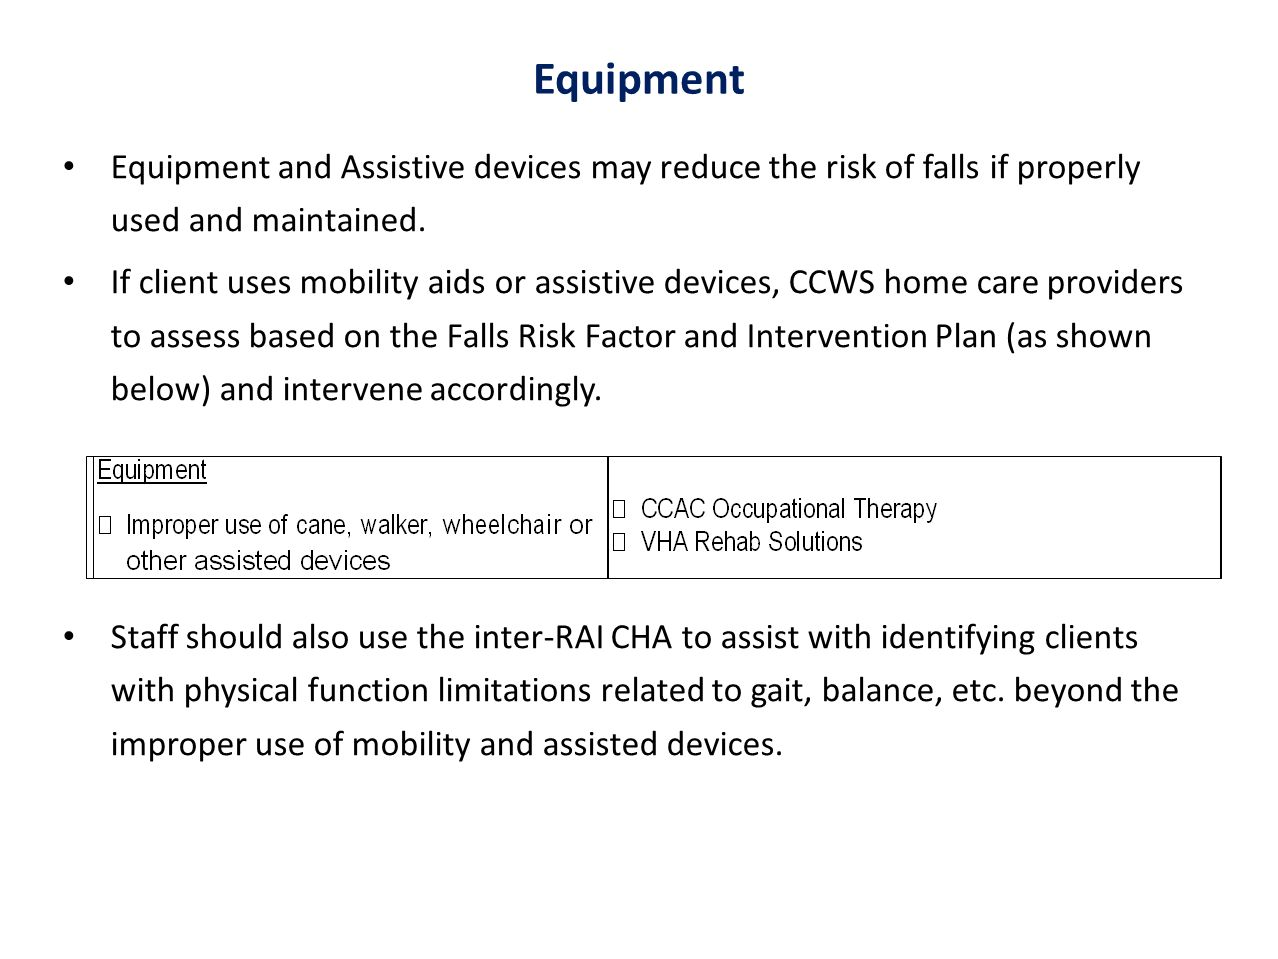 Equipment Equipment and Assistive devices may reduce the risk of falls if properly used and maintained.